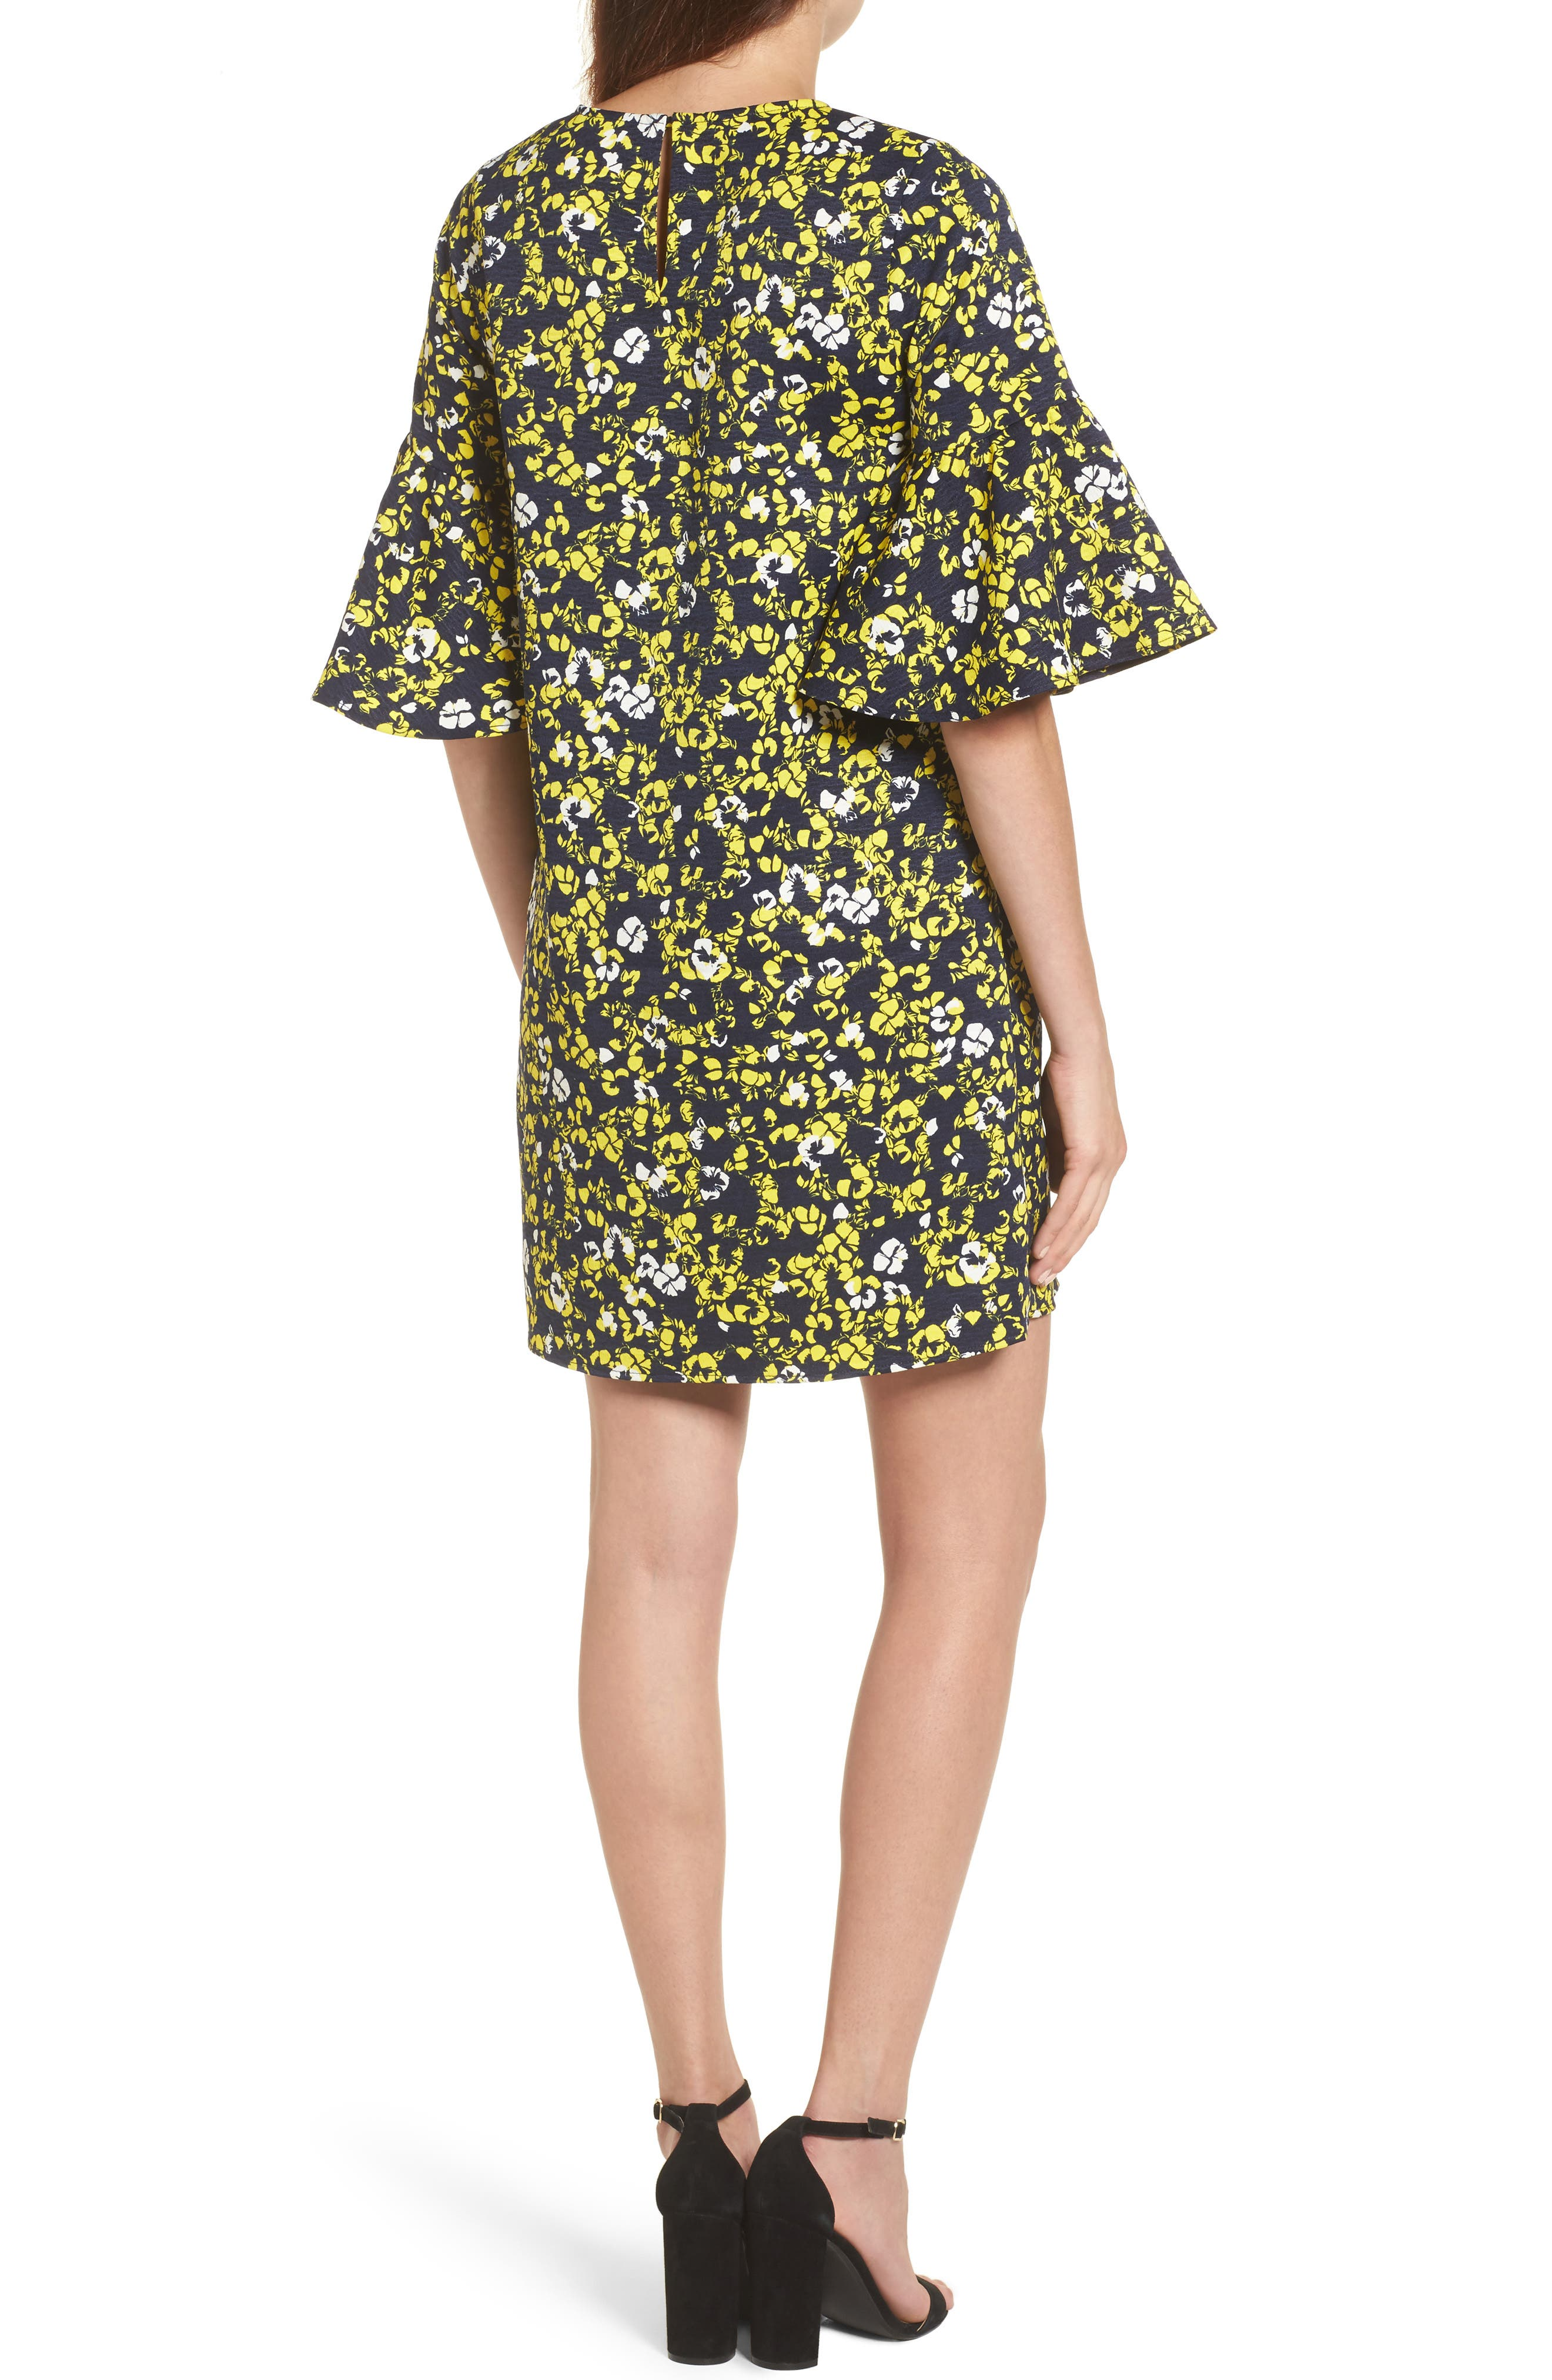 Ruffle Sleeve Shift Dress,                             Alternate thumbnail 2, color,                             Navy- Yellow Floral